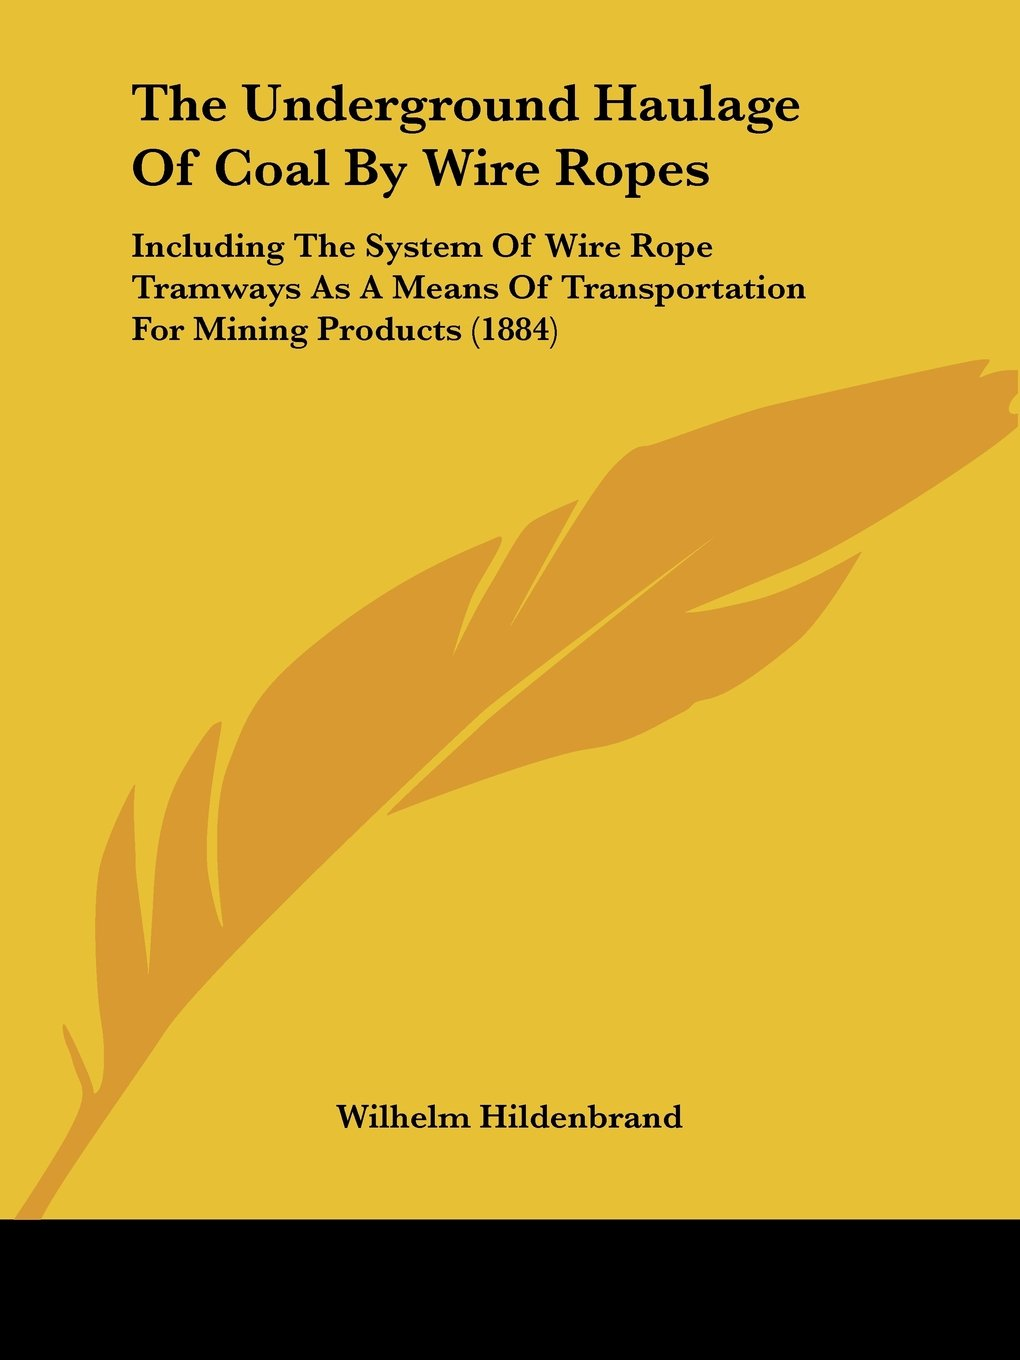 Read Online The Underground Haulage Of Coal By Wire Ropes: Including The System Of Wire Rope Tramways As A Means Of Transportation For Mining Products (1884) ebook